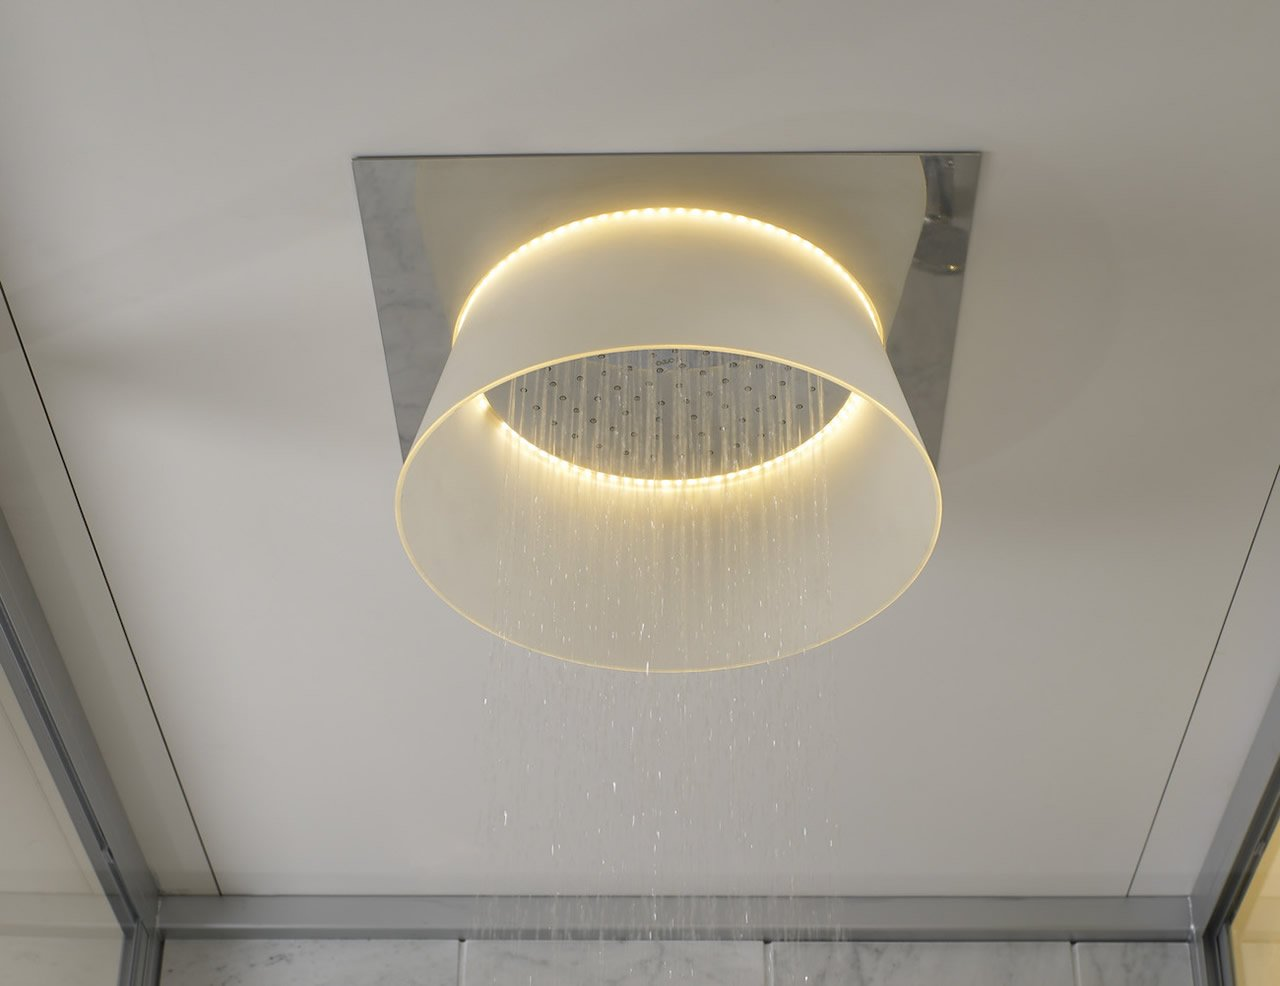 Toto launches smart ceiling-mounted showerheads 2